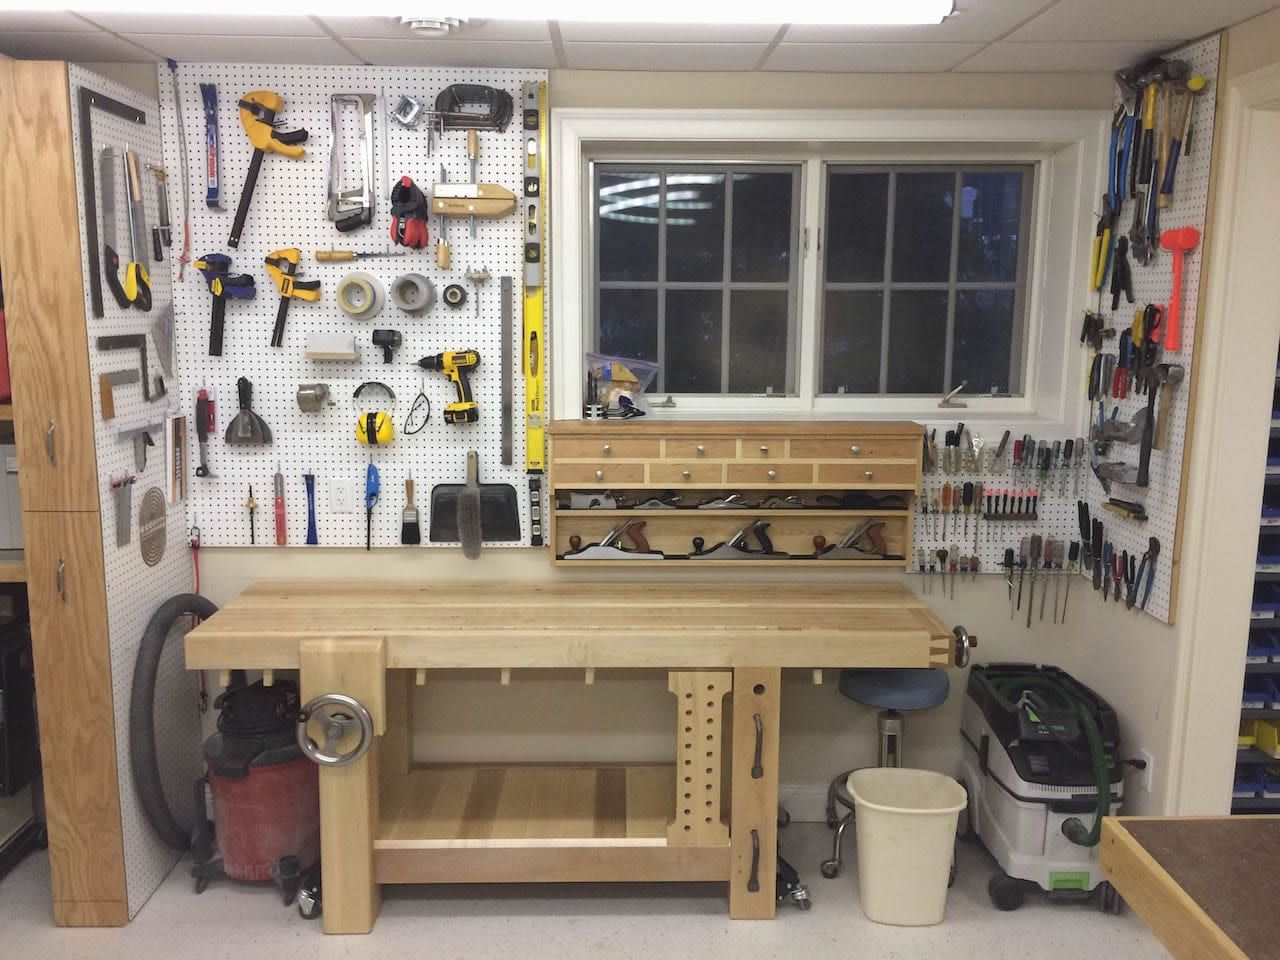 Set Up A Complete Woodshop For Under $1000 | Cool Woodwork ...